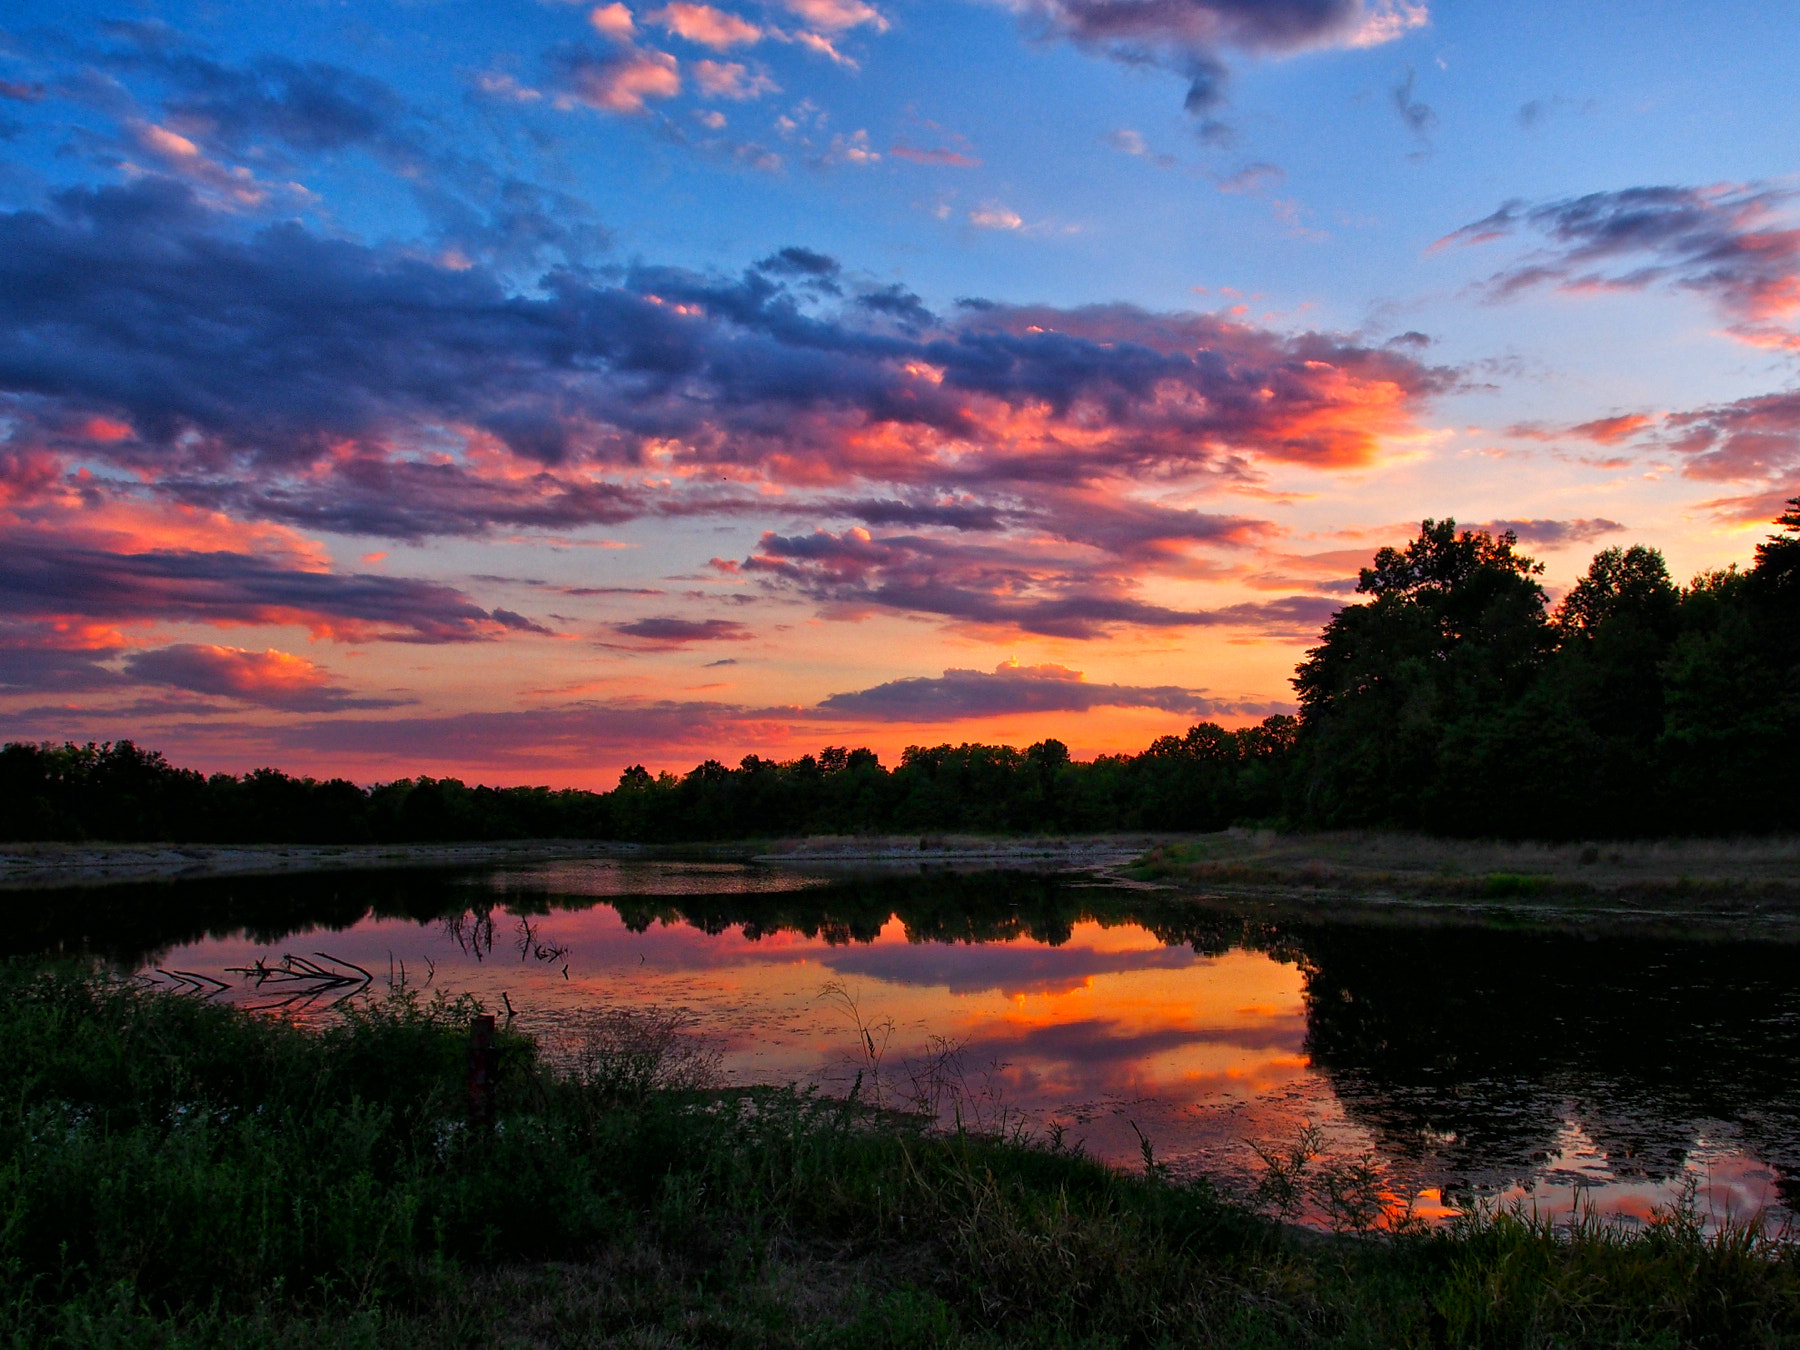 Photograph Day Into Night by Linda McCann on 500px